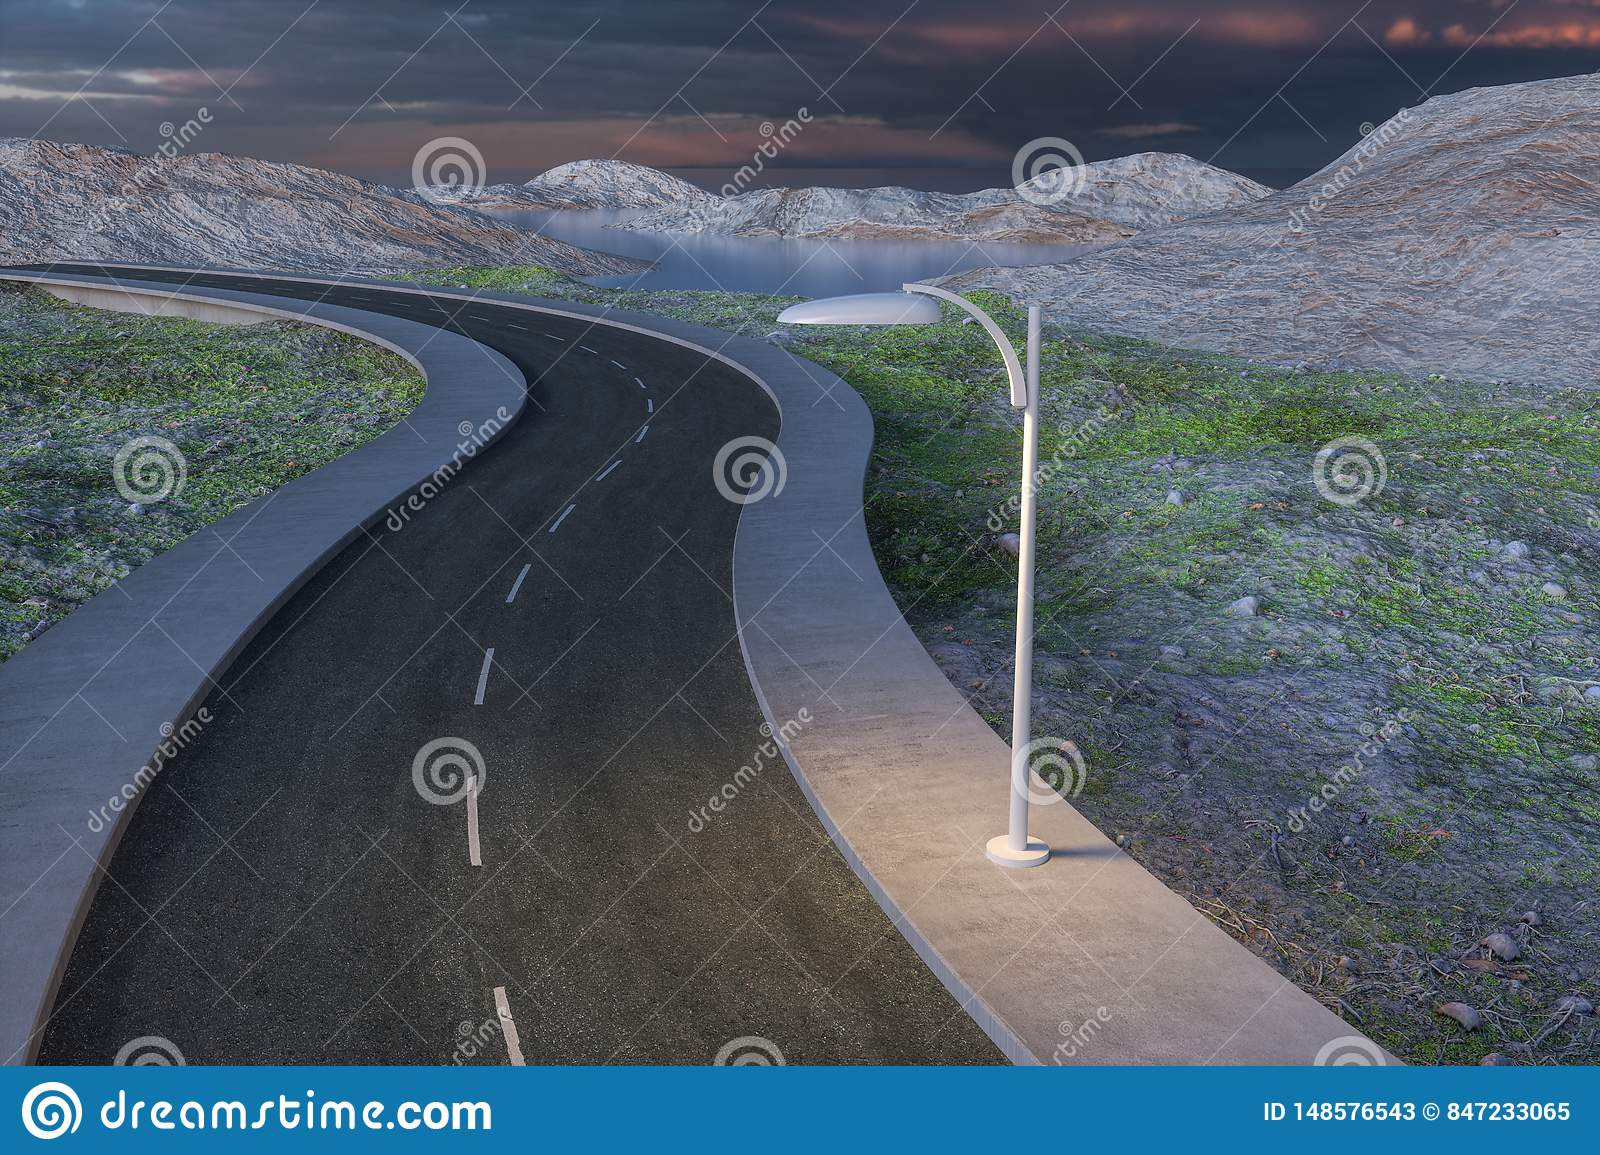 The waving road in the deserted suburbs, 3d rendering